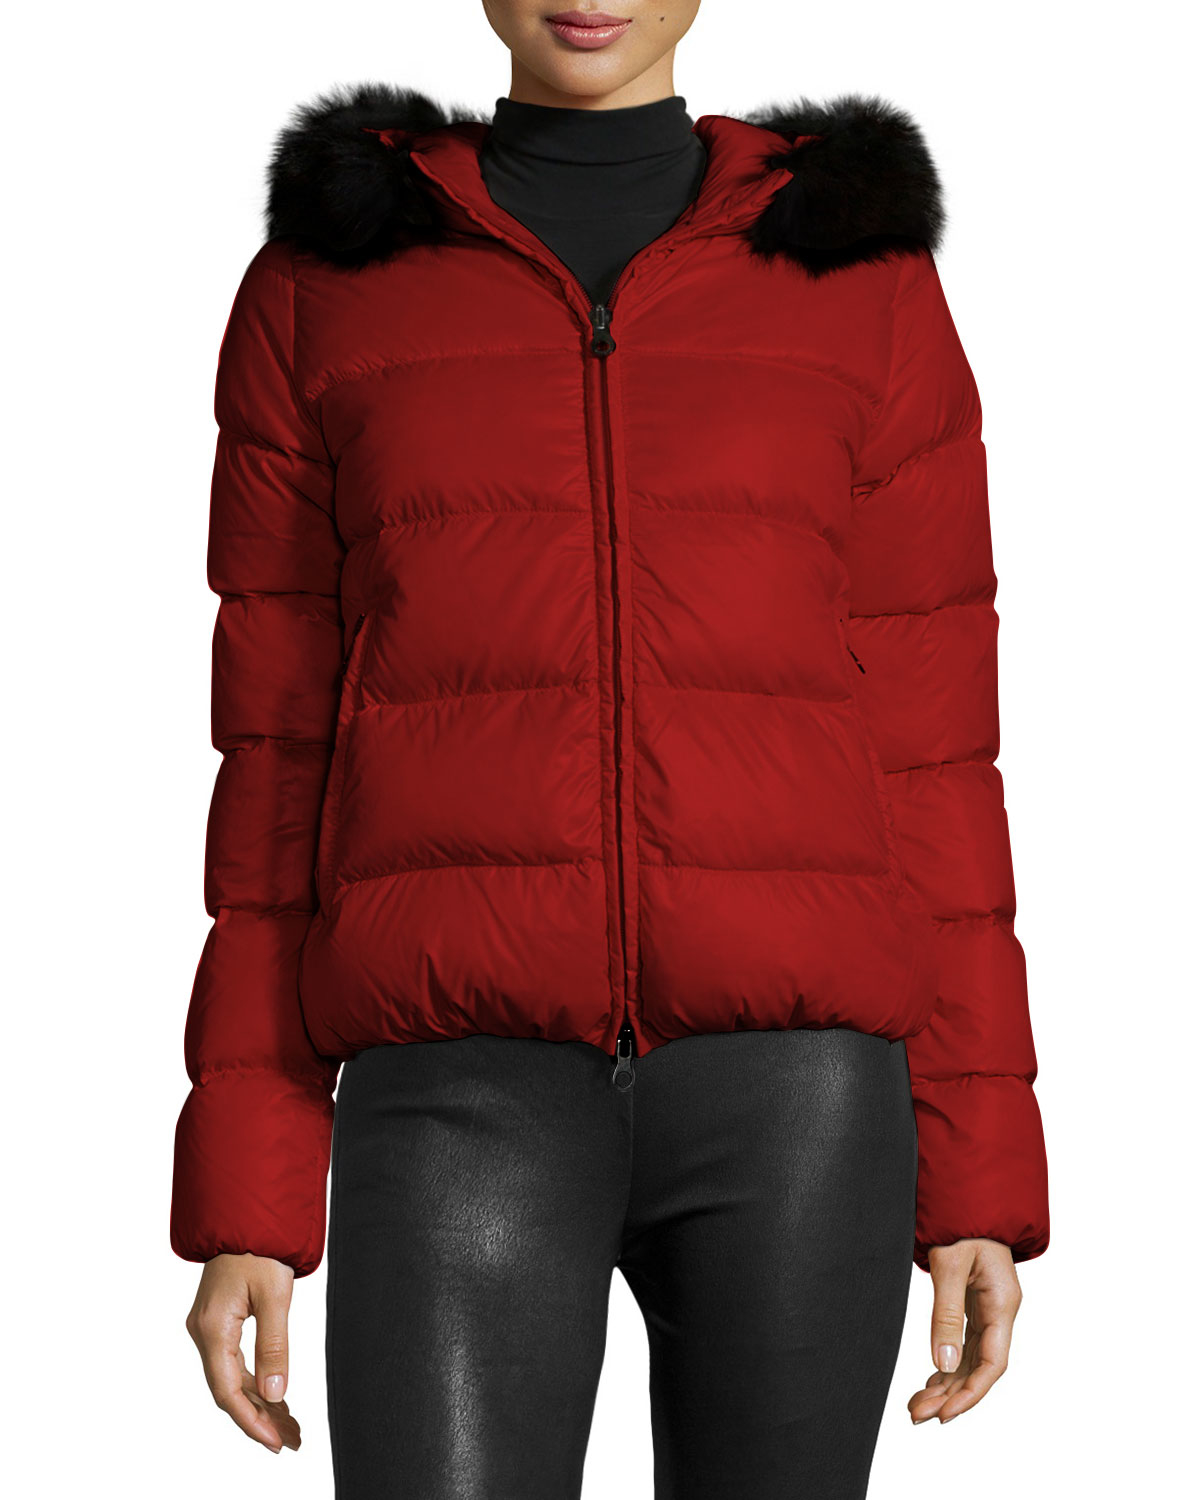 Puffer reds clothing store